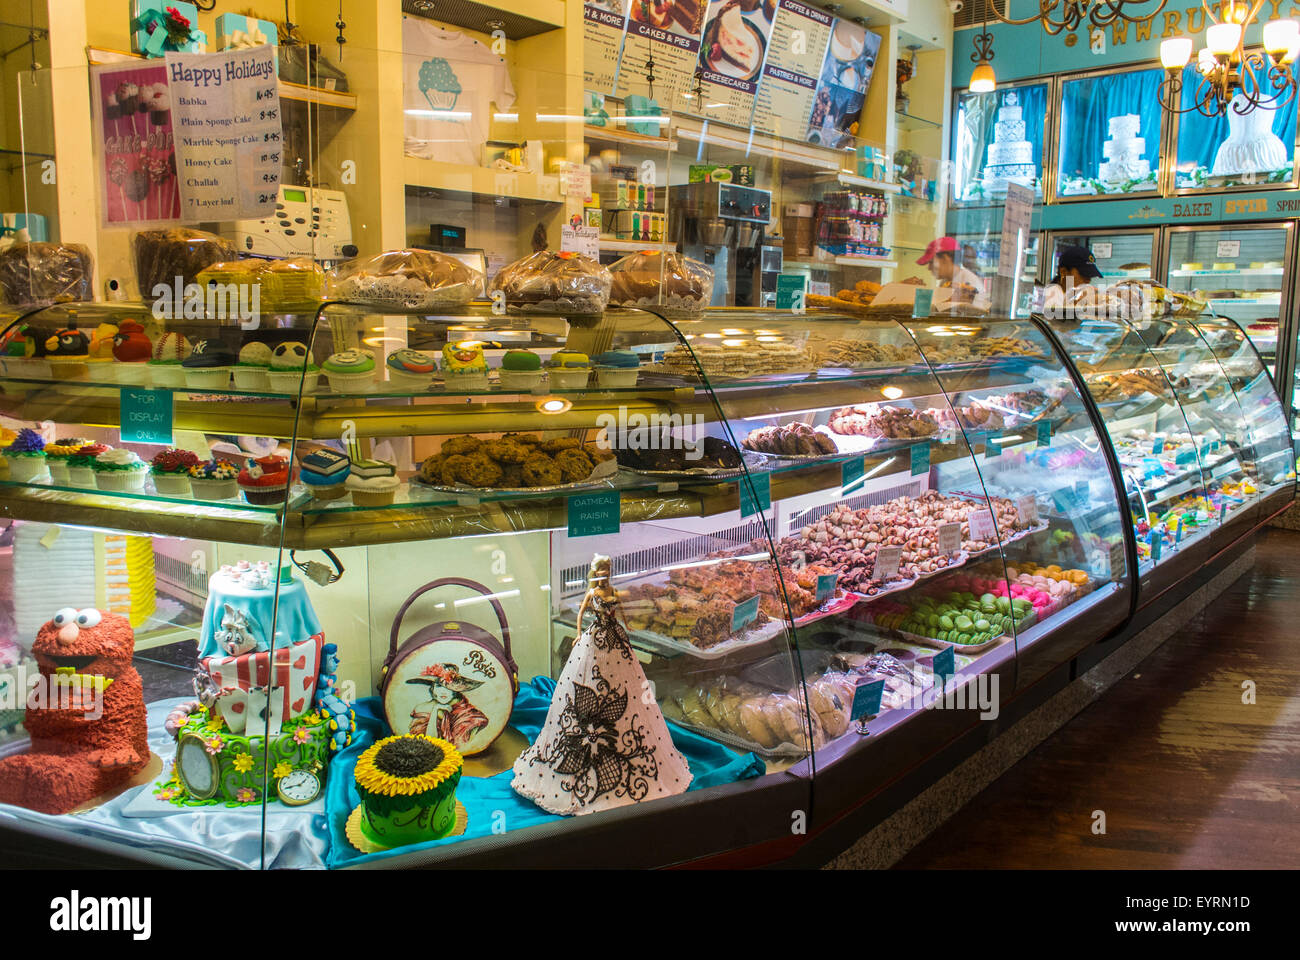 new york city usa ruthery s bakery shop case with cakes shops